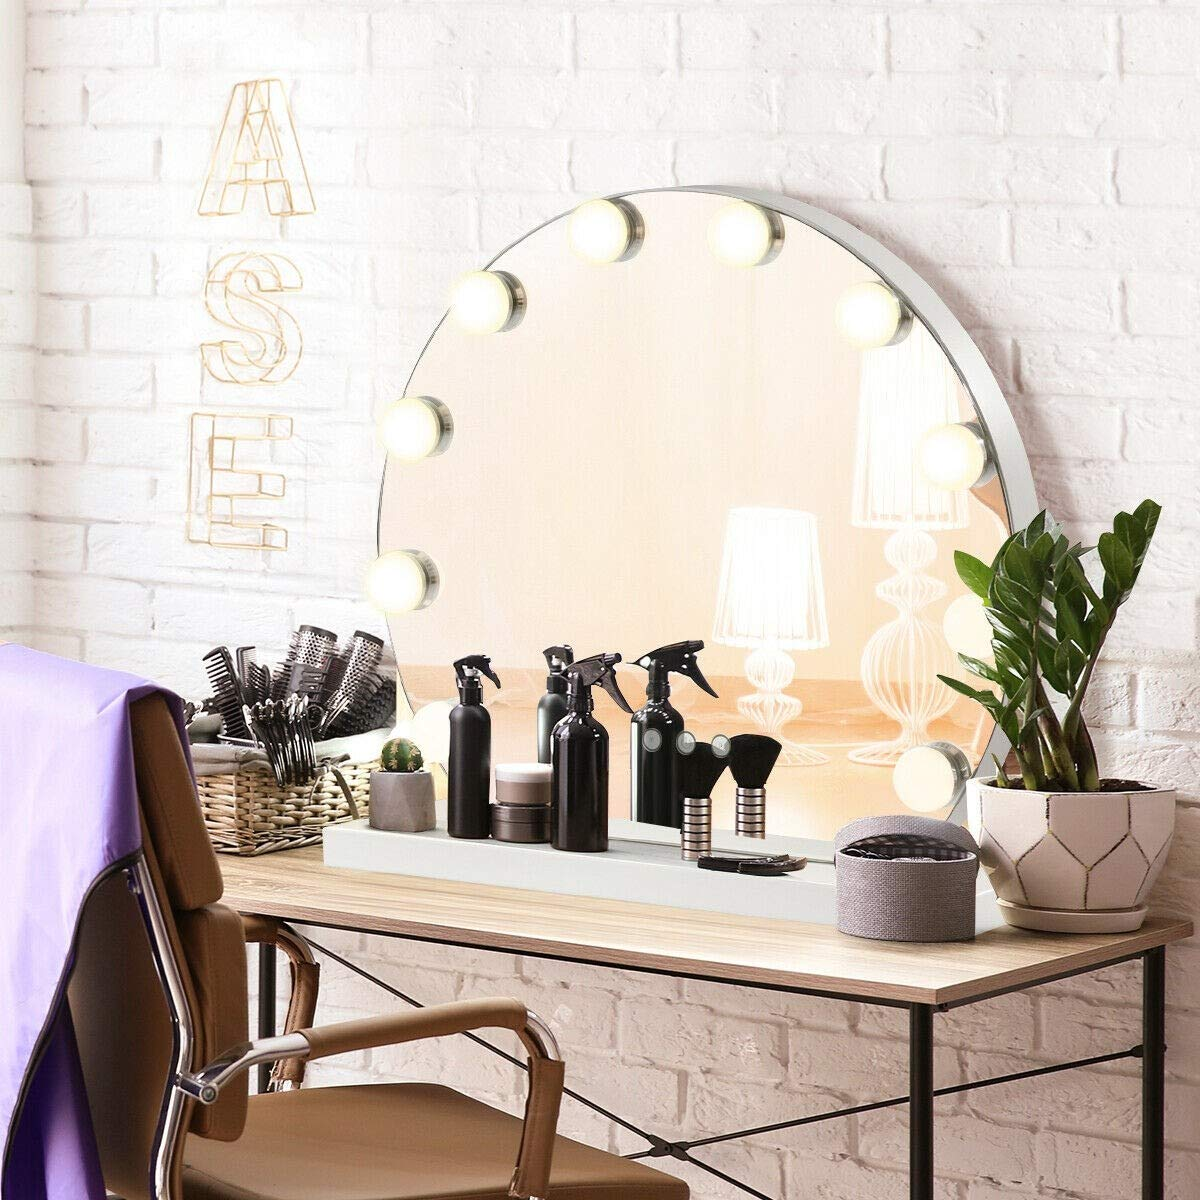 Kanizz Professional Makeup Vanity Furniture Hollywood Style Mirror with Light Tabletop Lighting Set Clear Bright Vision Makeup Artist Movie Brodcasting Studio Production House